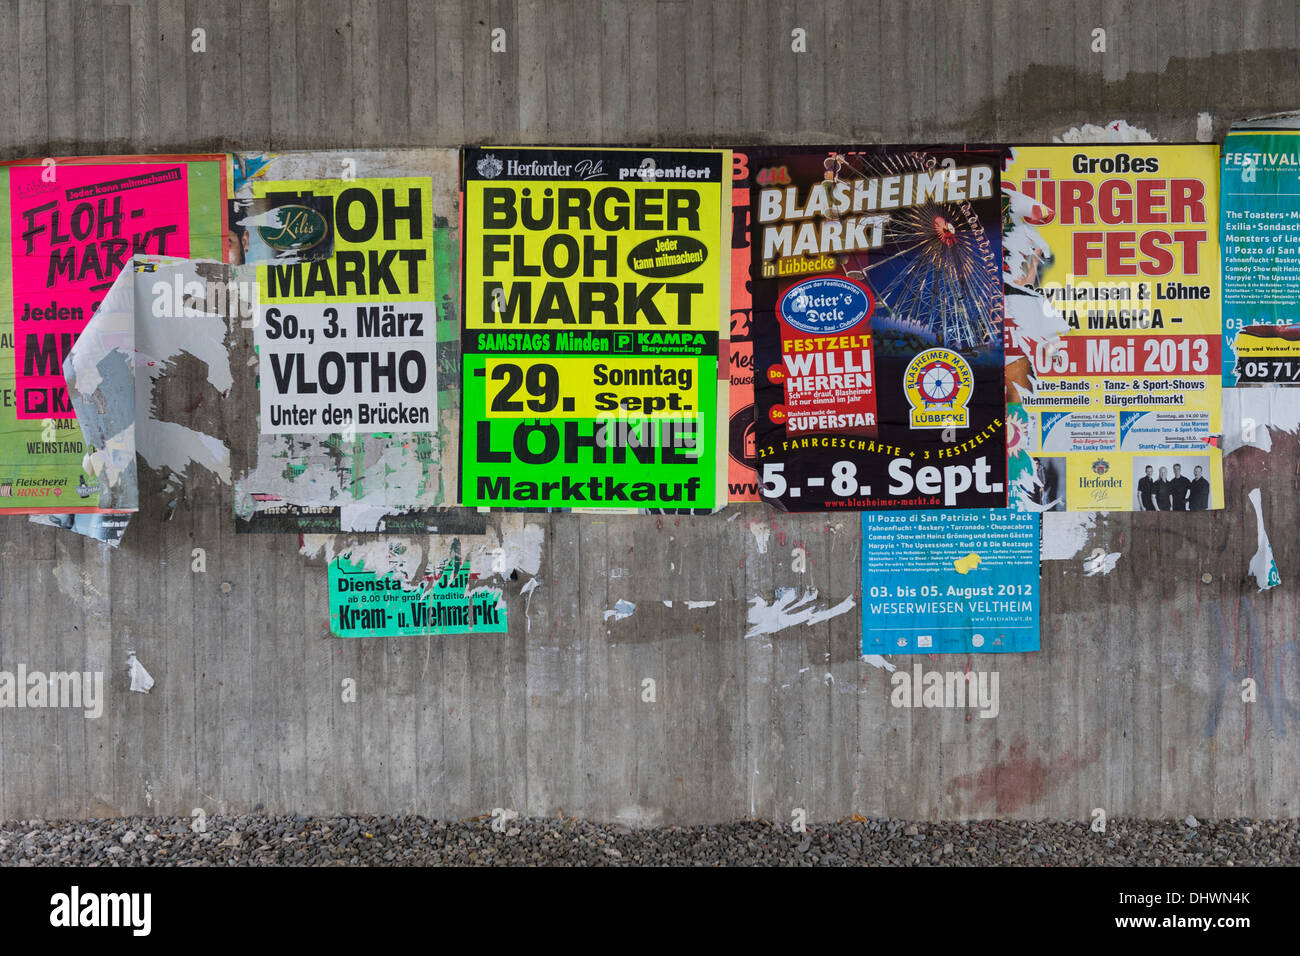 Bill Posters in German on Underpass Wall - Stock Image